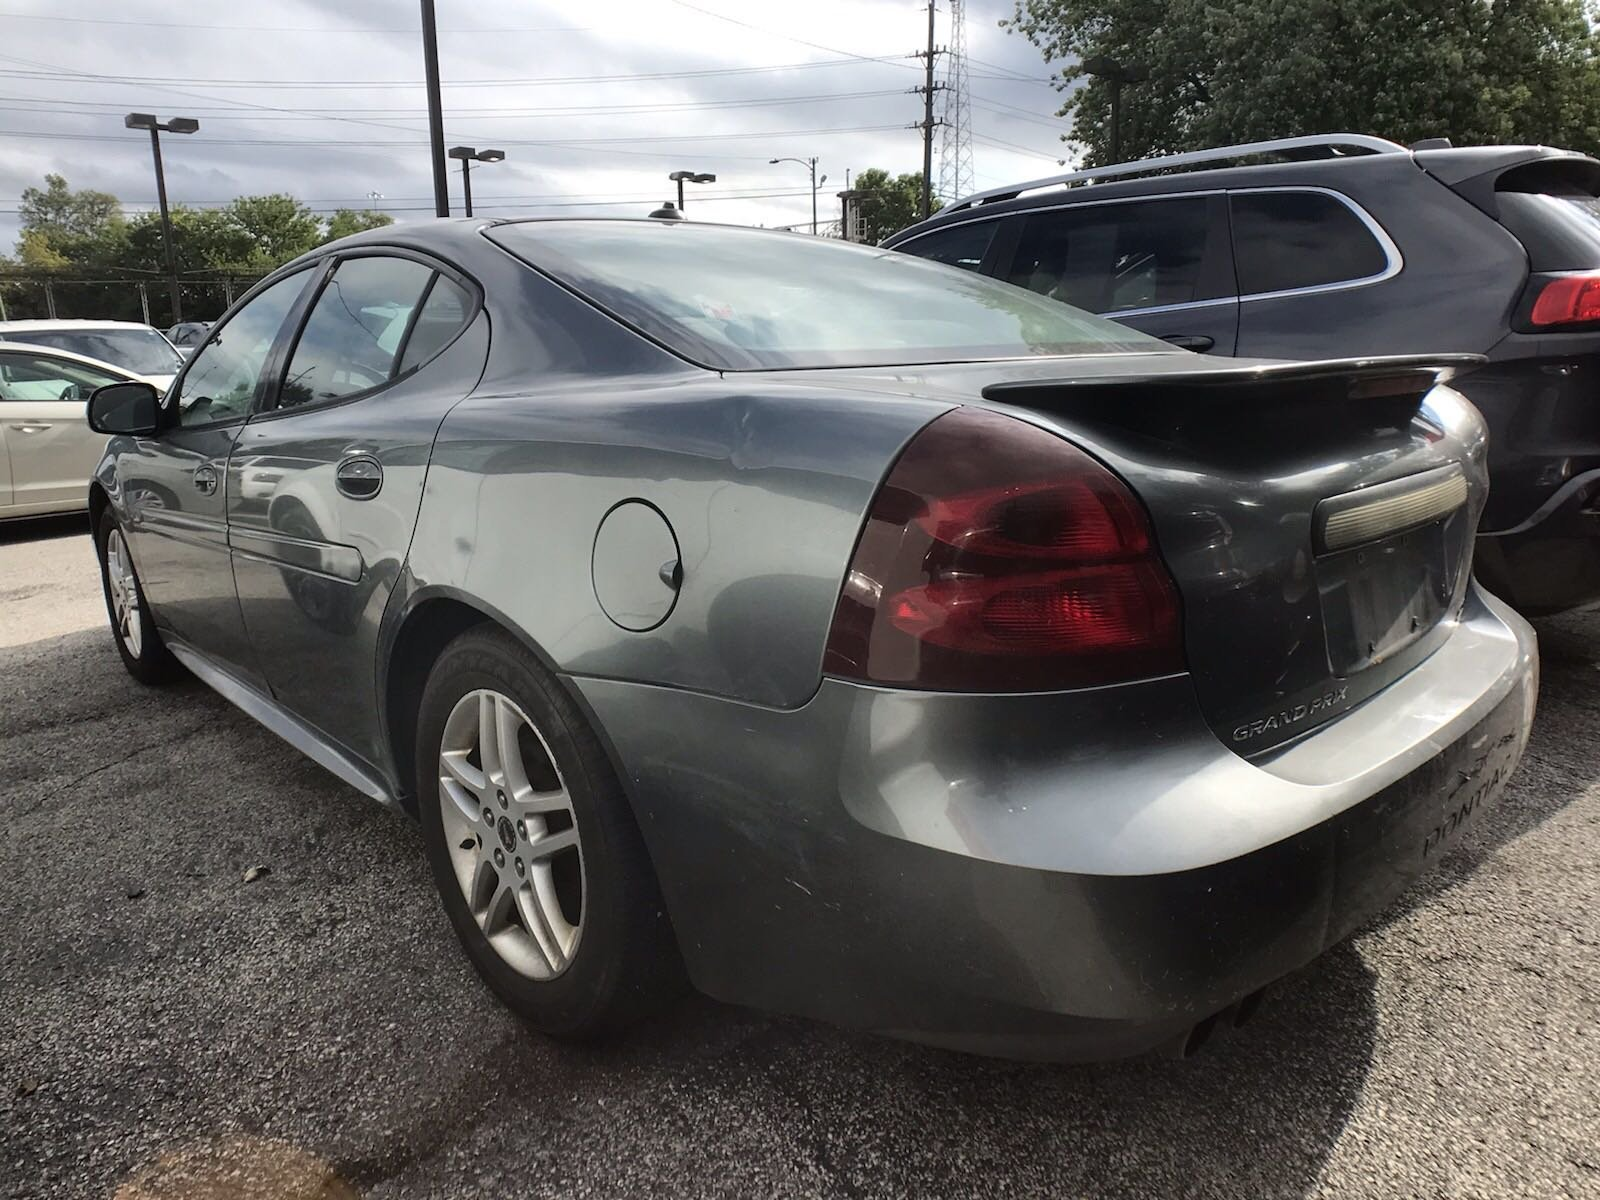 Cars for Sale Near Me Under 1000 Beautiful Used Vehicles Between $1 001 and $10 000 for Sale In Chicago